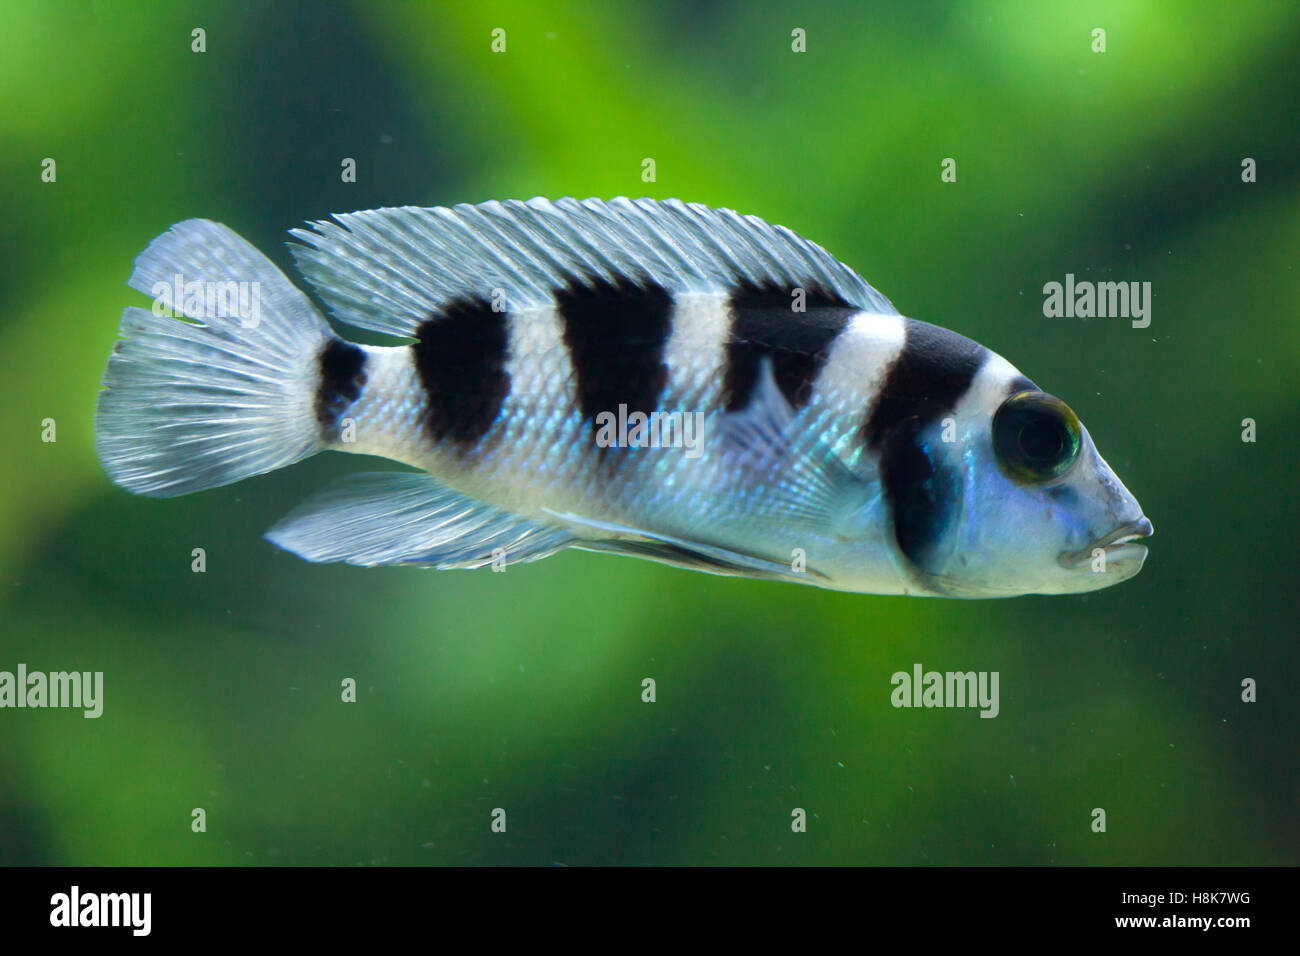 frontosa cyphotilapia frontosa also known as the humphead cichlid juvenile fish